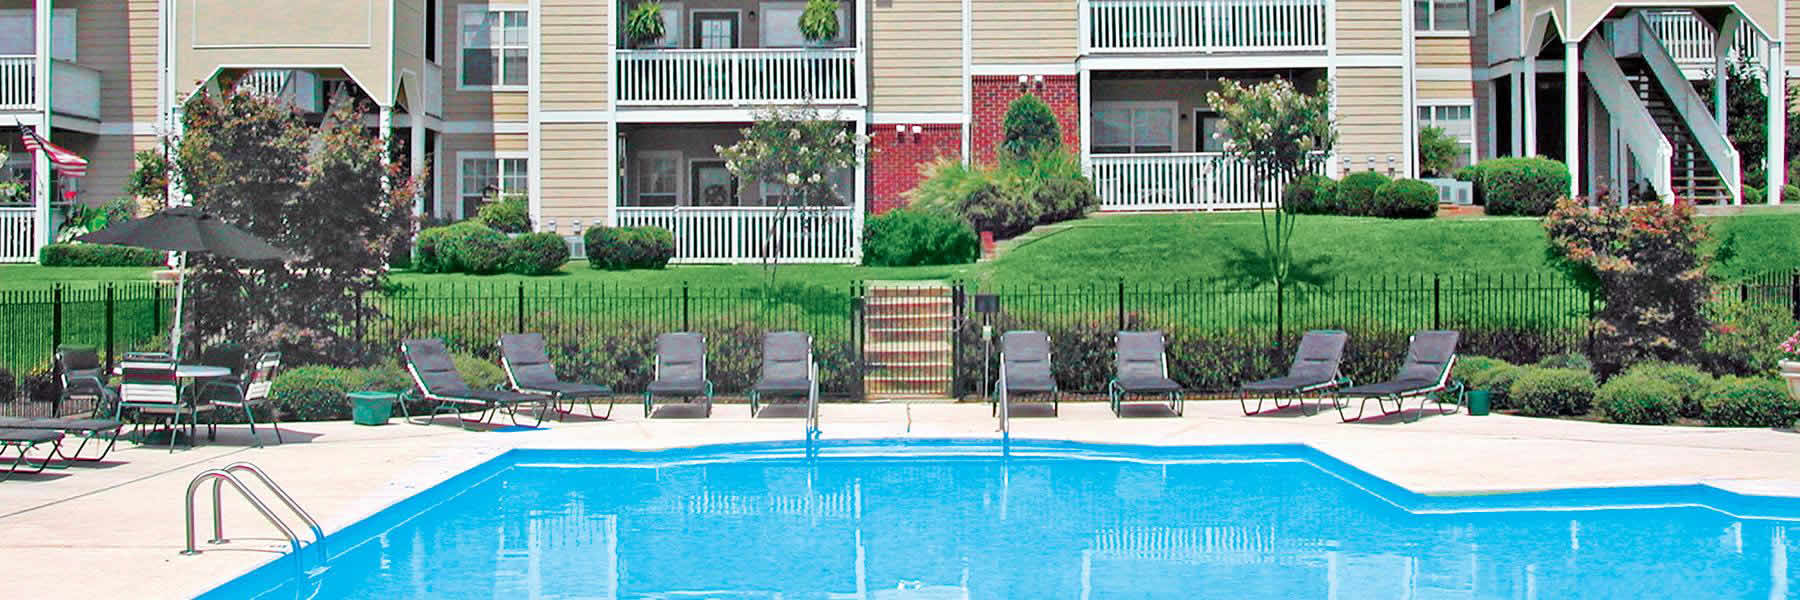 Apartments For Rent In Chattanooga, TN | ChattanoogaApartmentGuide.com | Apartment  Listings